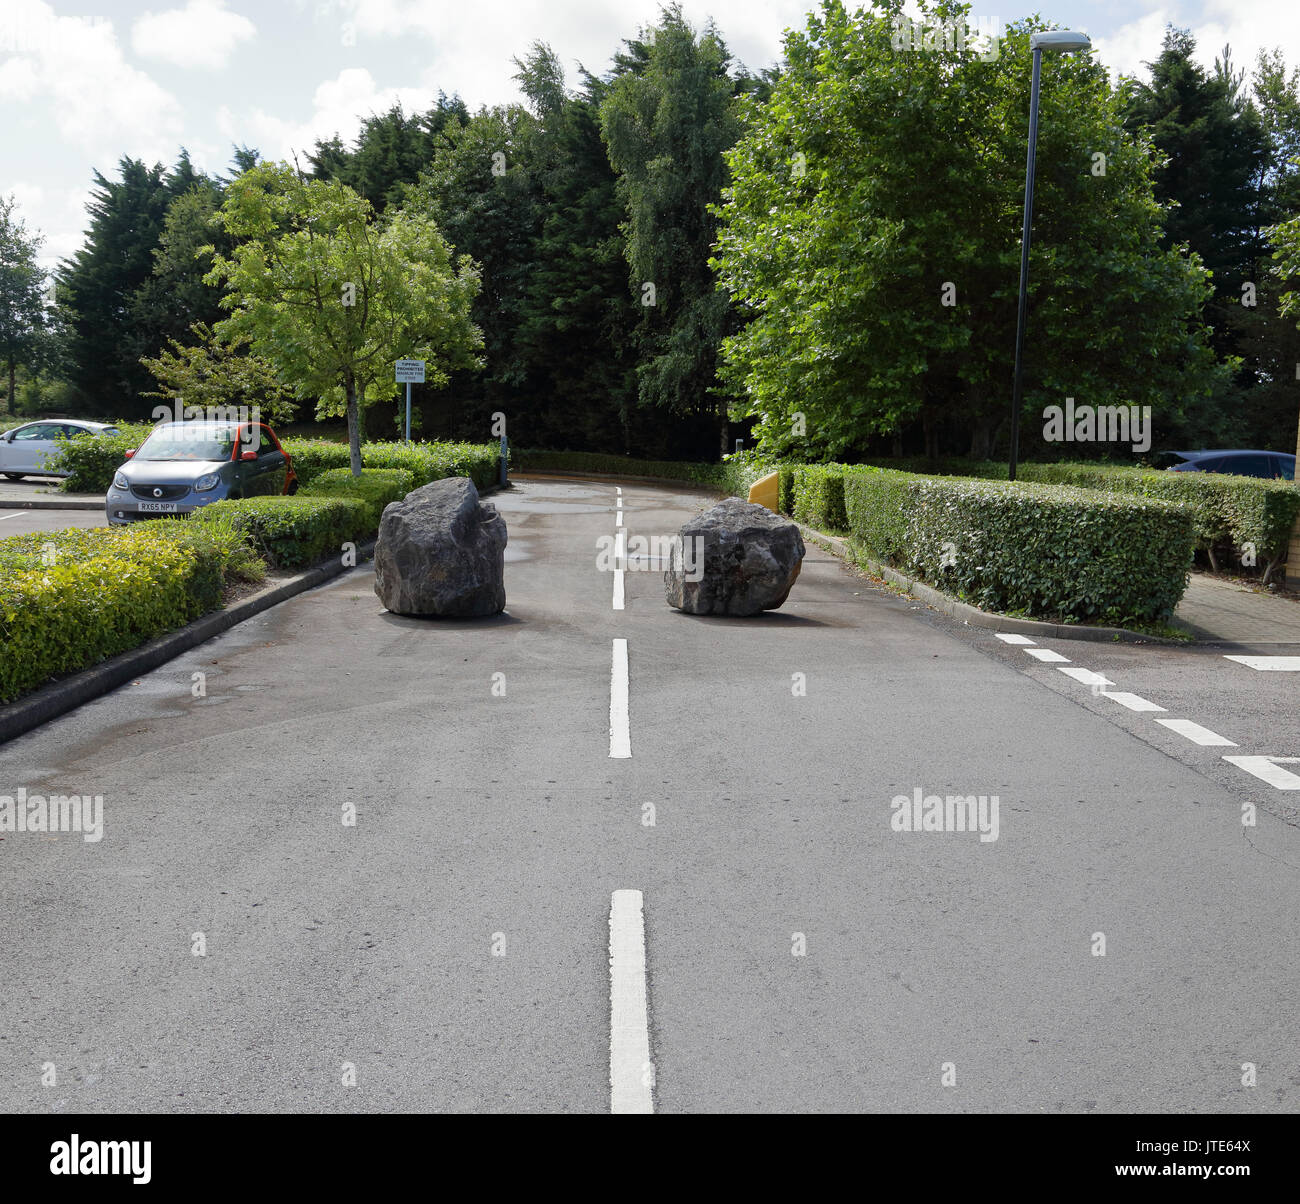 A small roadway that has been blocked with two huge lumps of rock positioned in the middle of each lane preventing enything other than a bike past it. - Stock Image